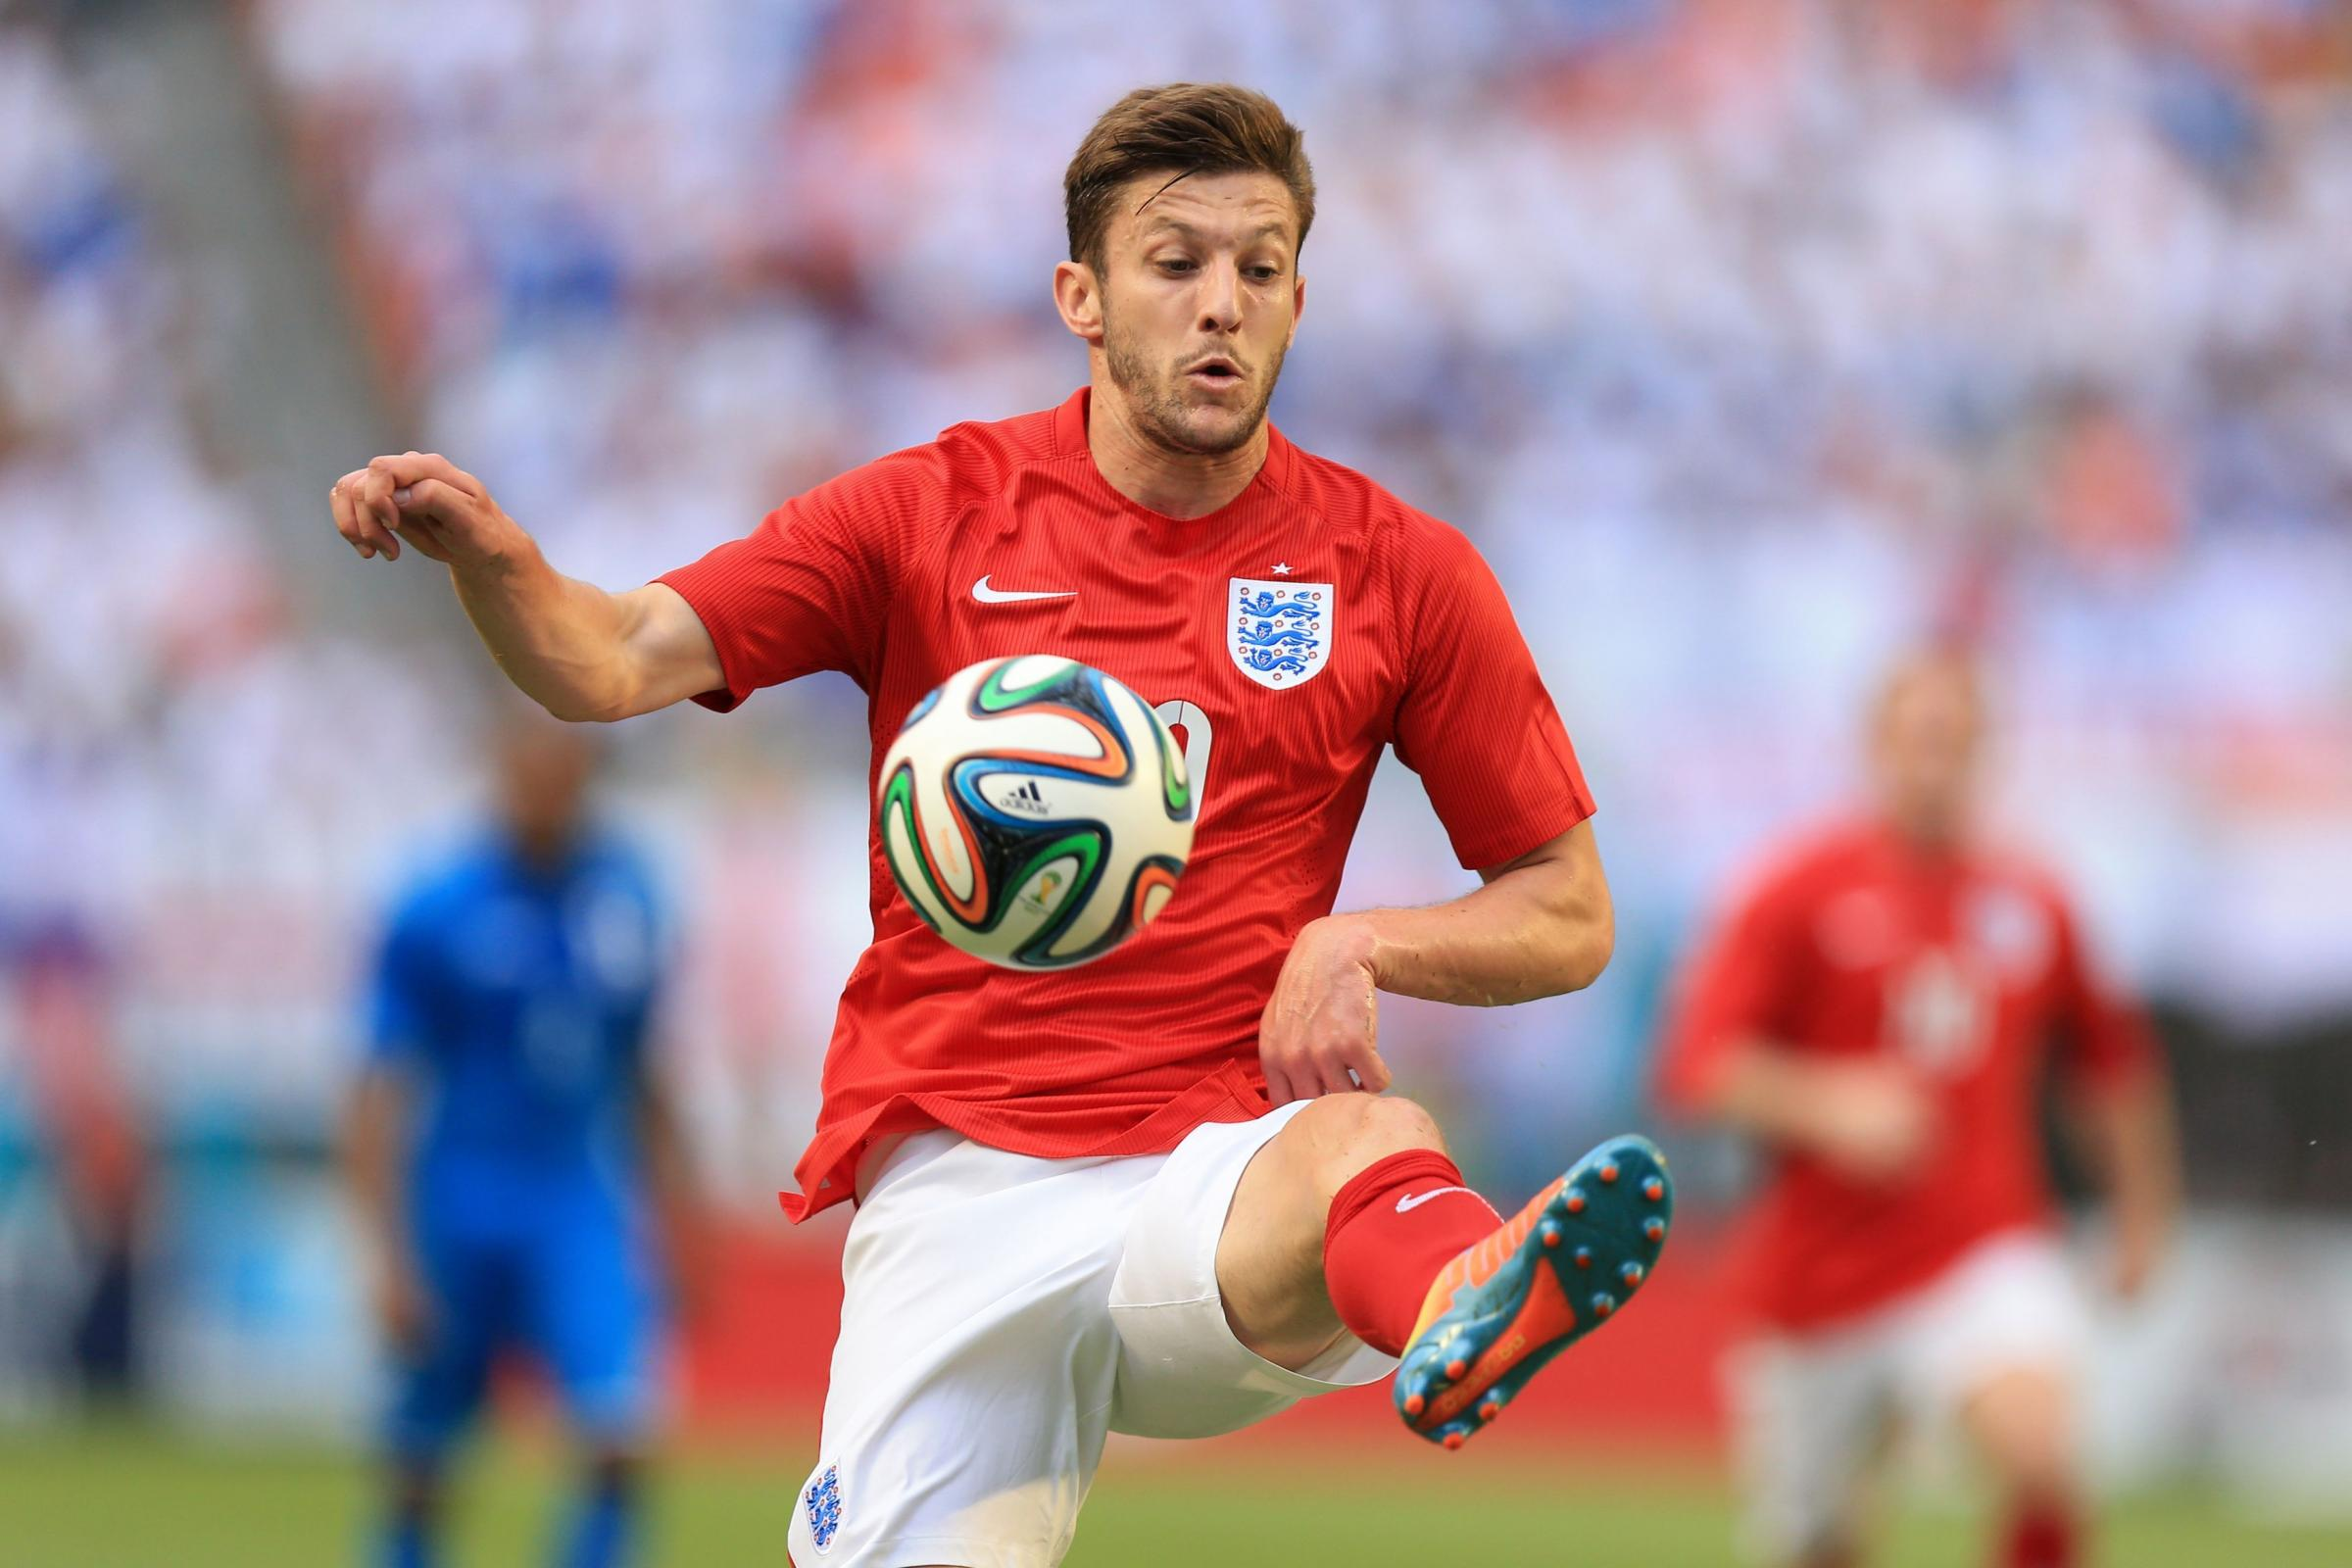 BIG MOVE: Liverpool's Adam Lallana